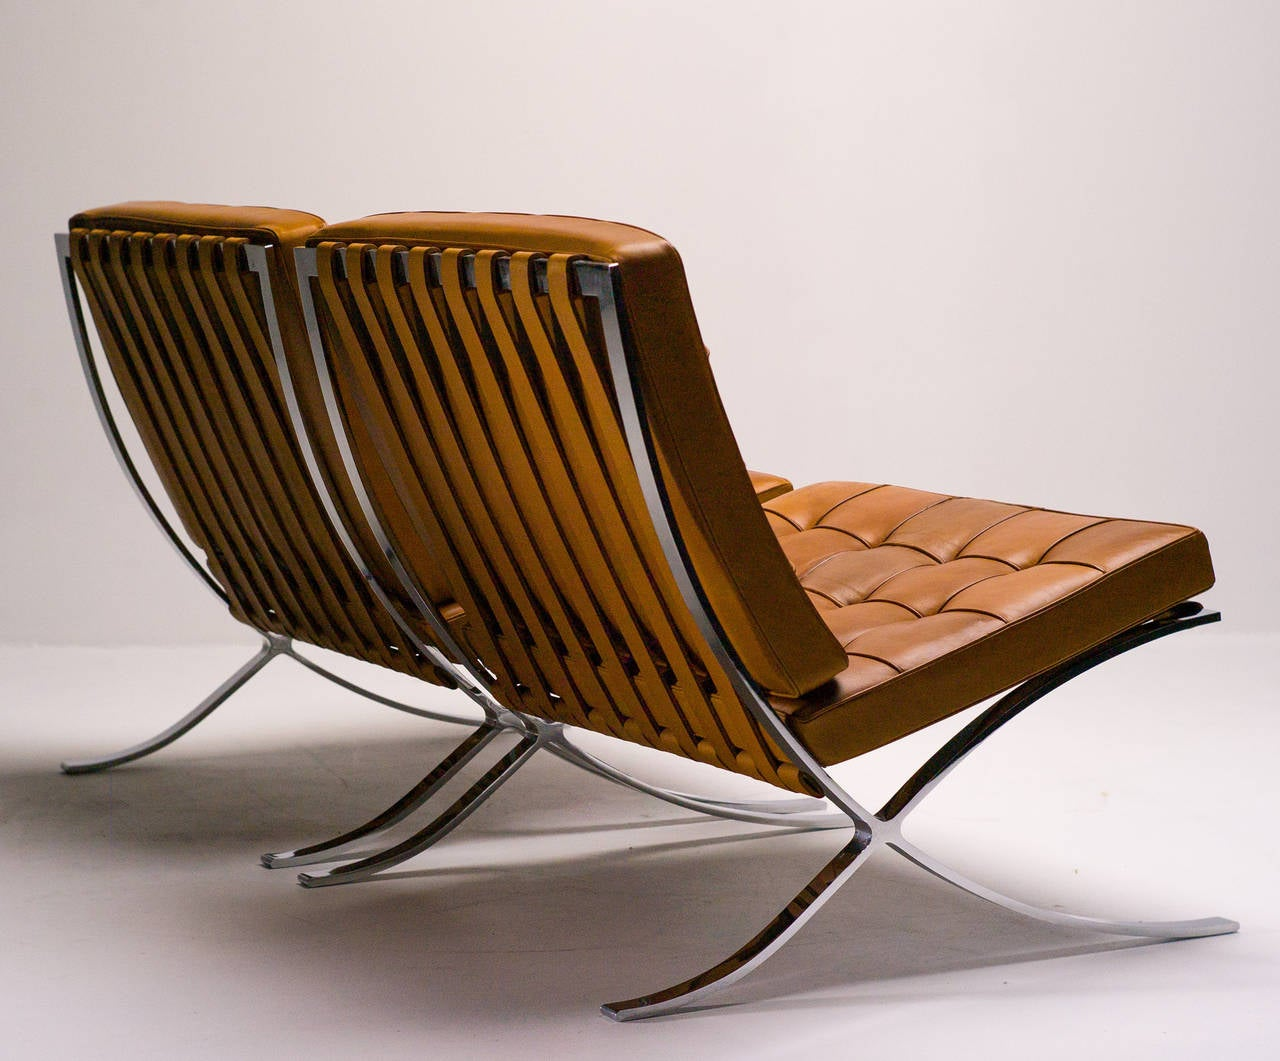 Barcelona Chairs In Saddle Leather By Mies Van Der Rohe For Knoll International At 1stdibs